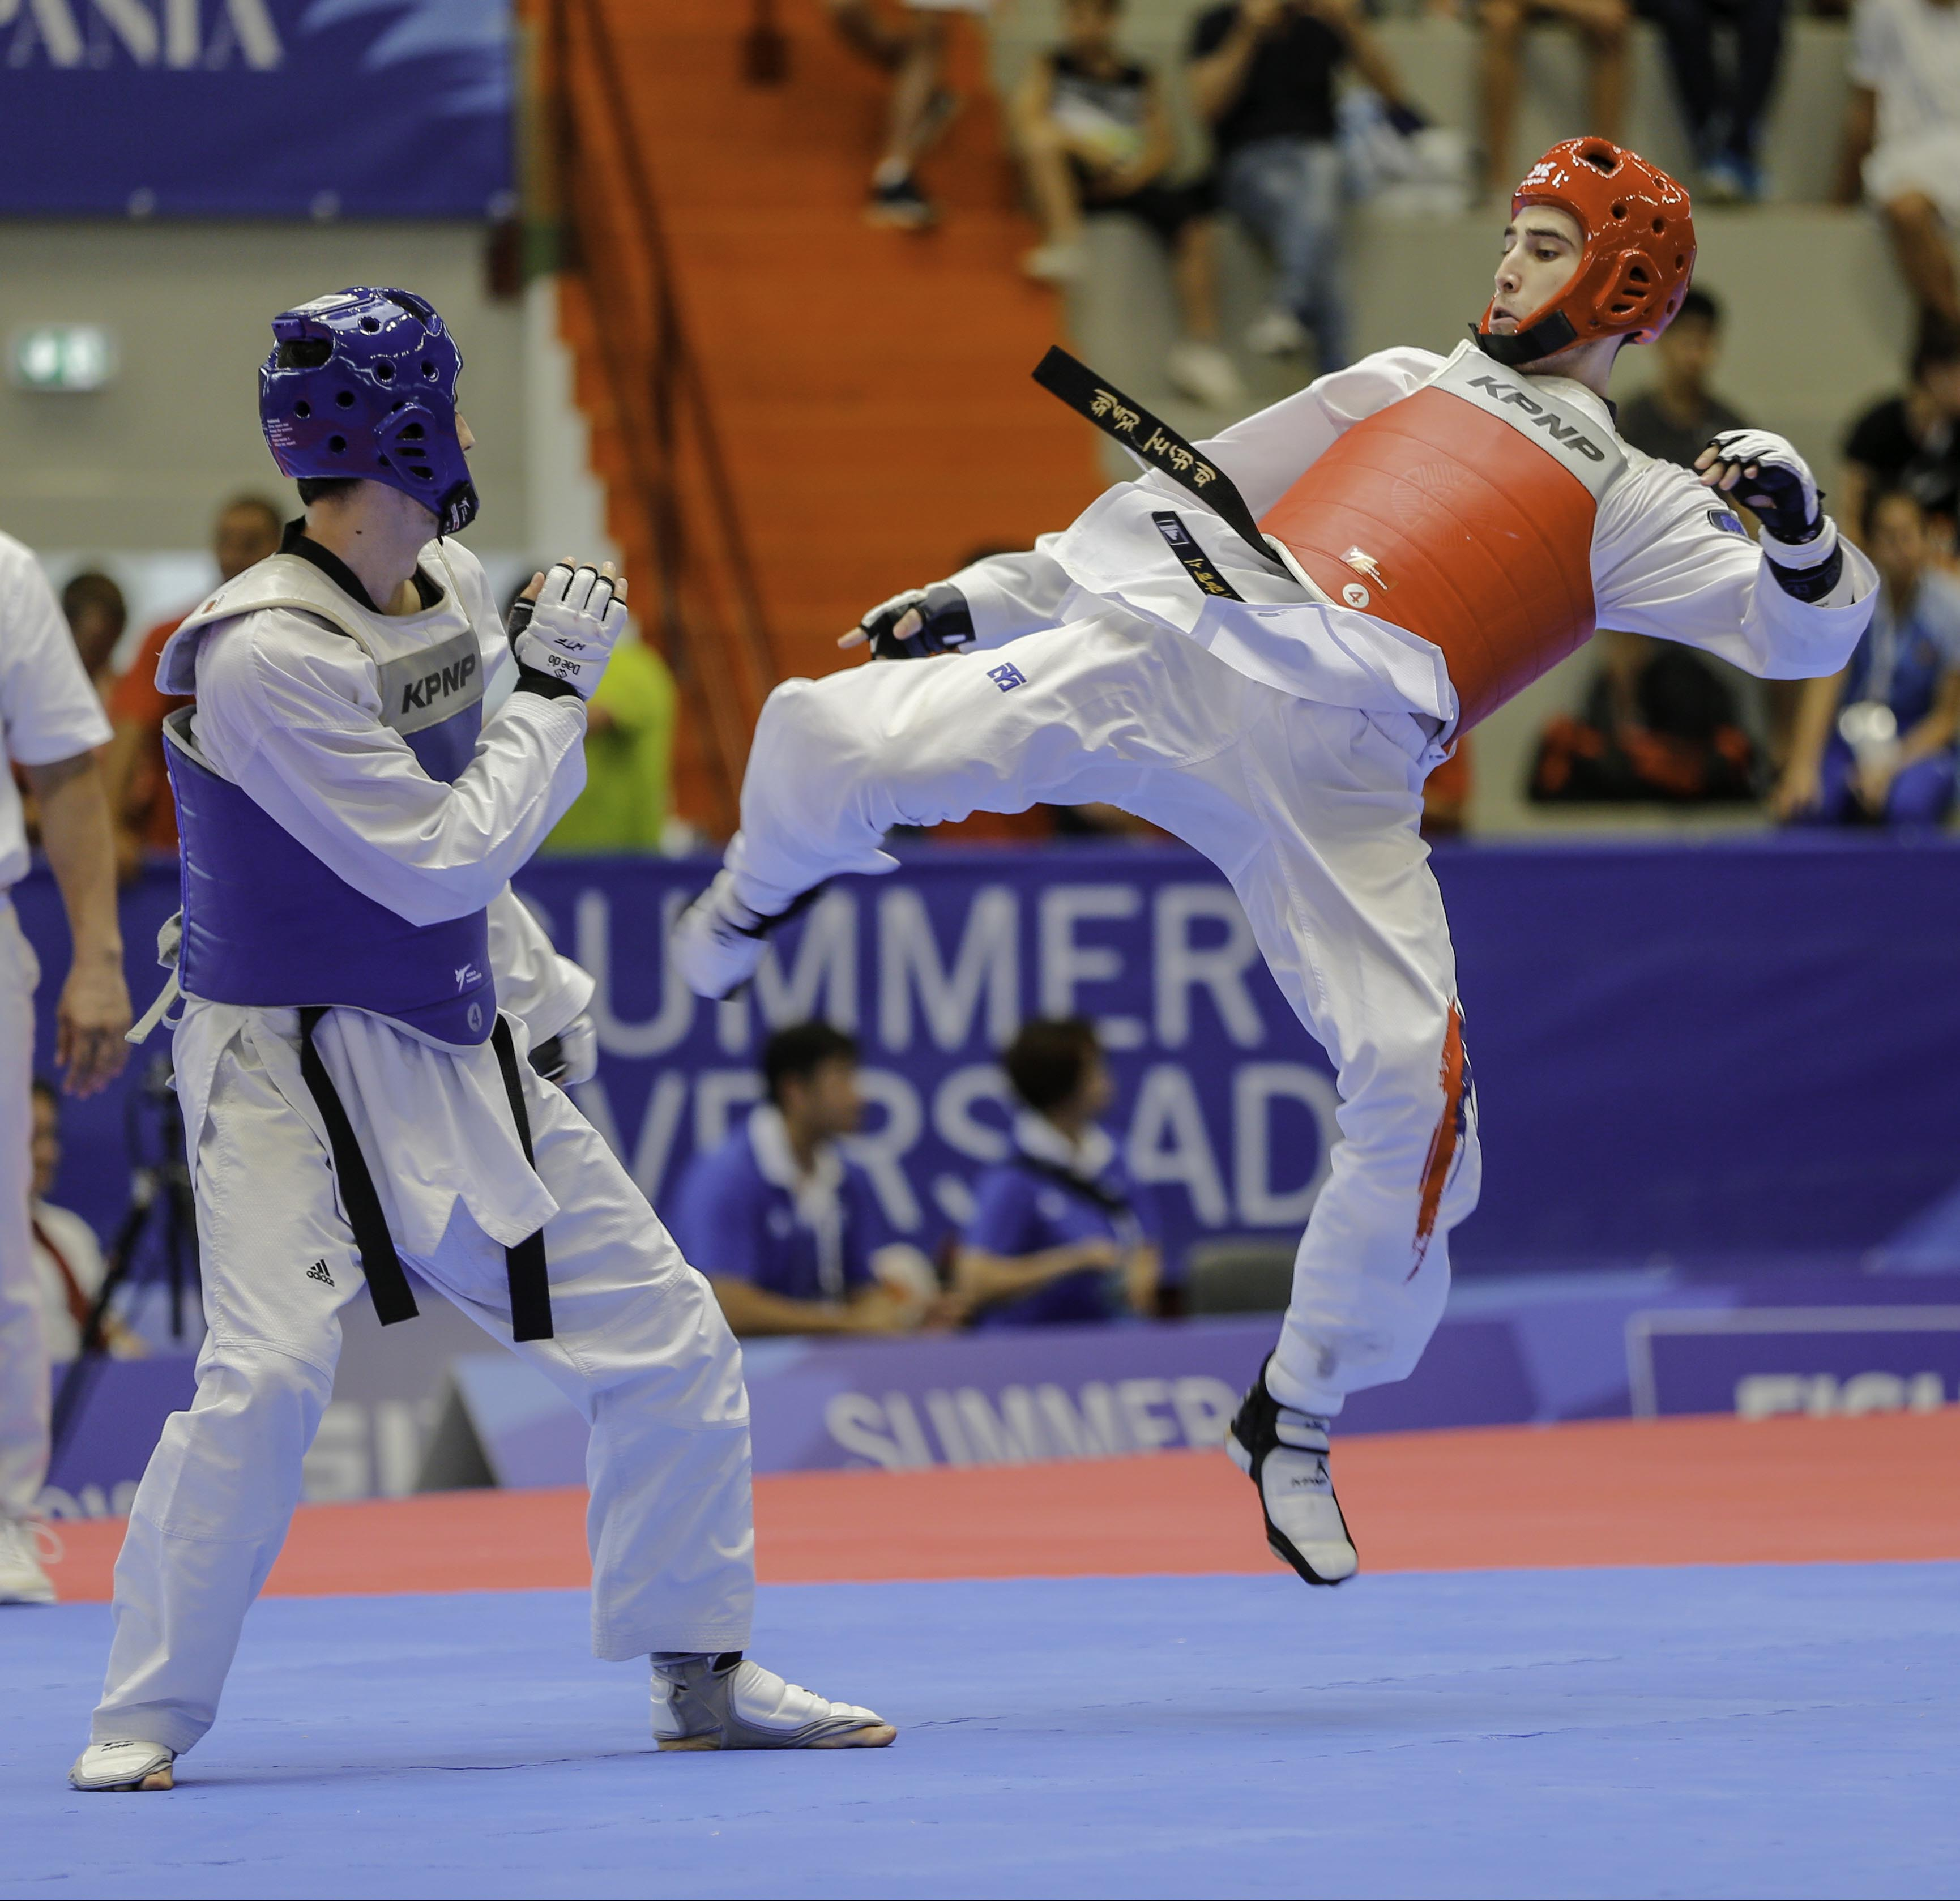 TAEKWONDO 09/07/19 - PHOTO POOL FOTOGRAFI UNIVERSIADE 2019